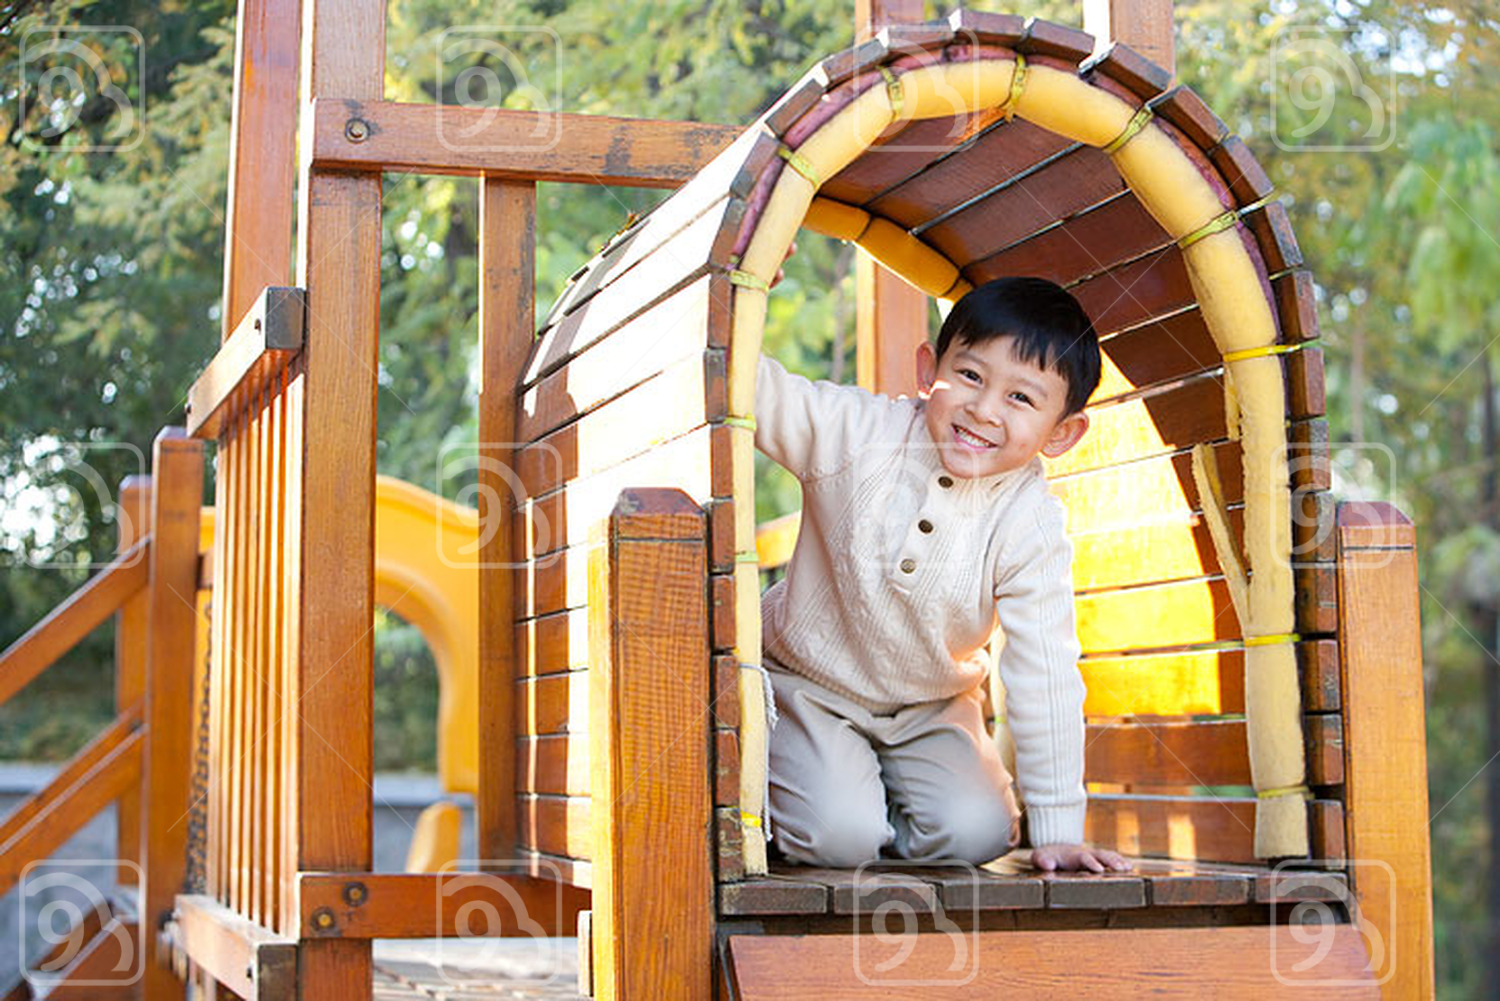 Chinese boy crawling through tunnel in playground